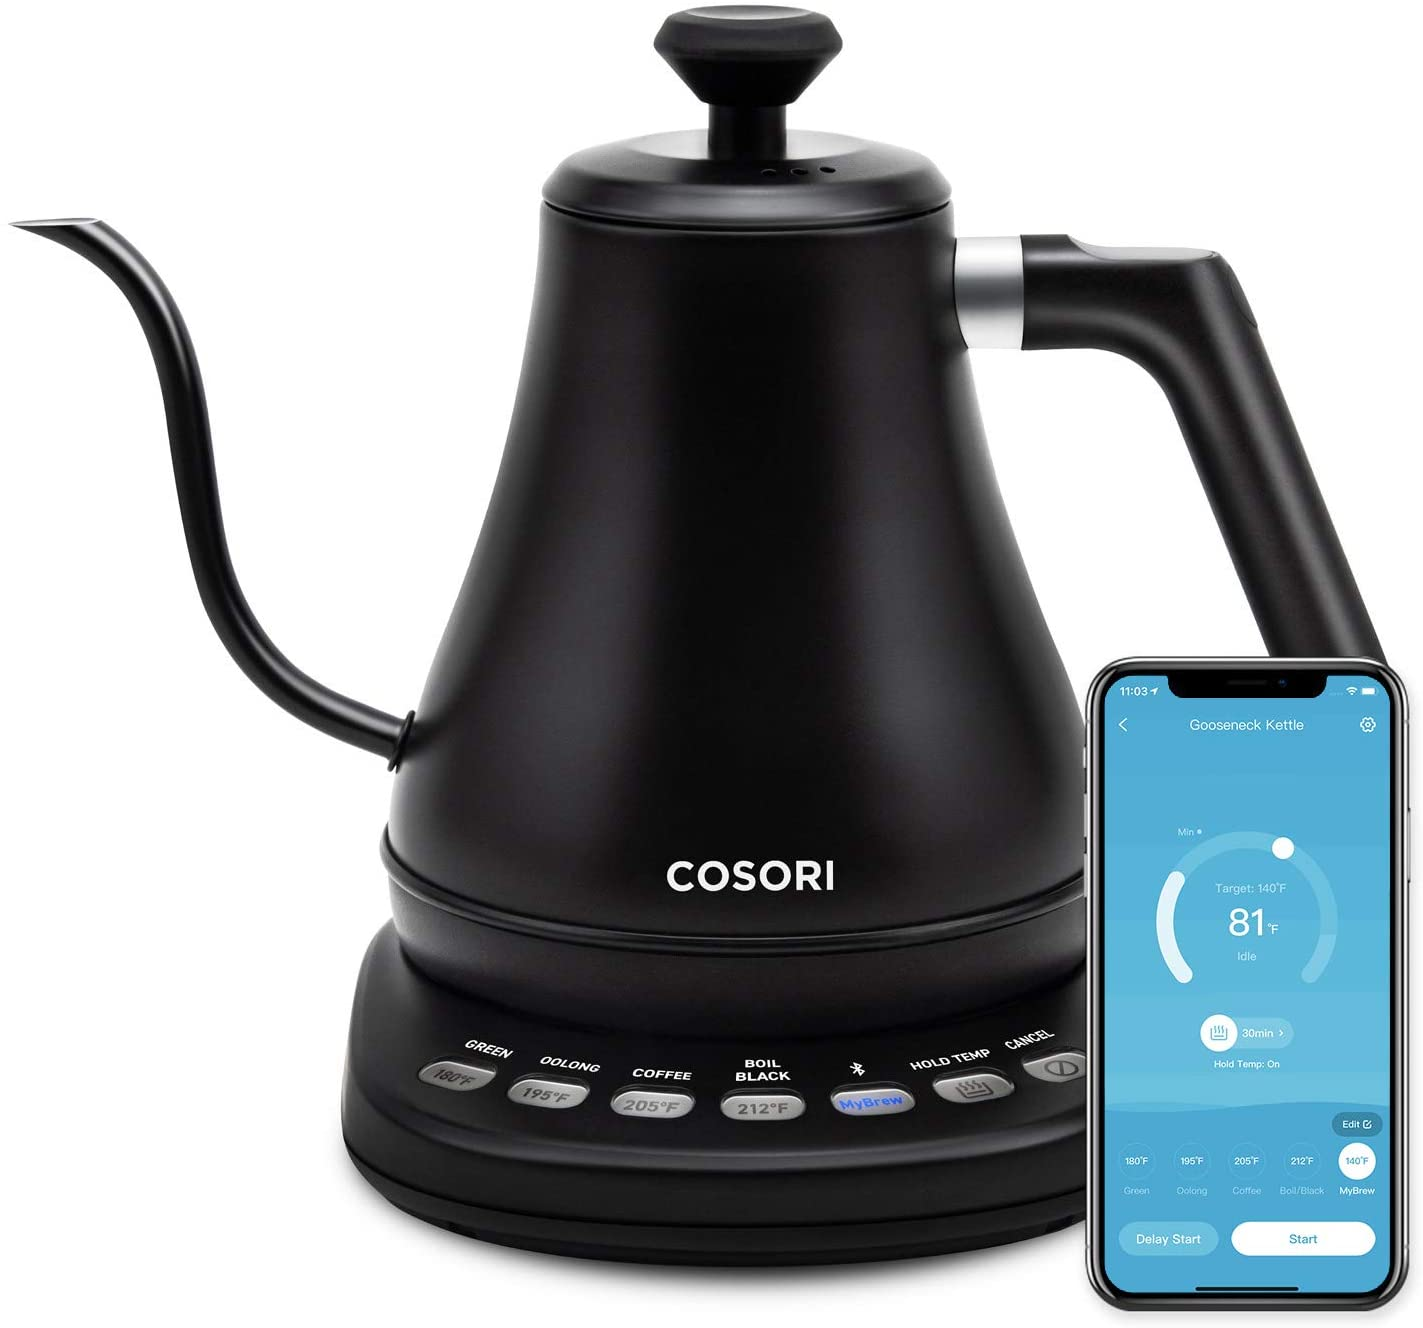 COSORI Rapid Boil Smart Electric Kettle For Coffee